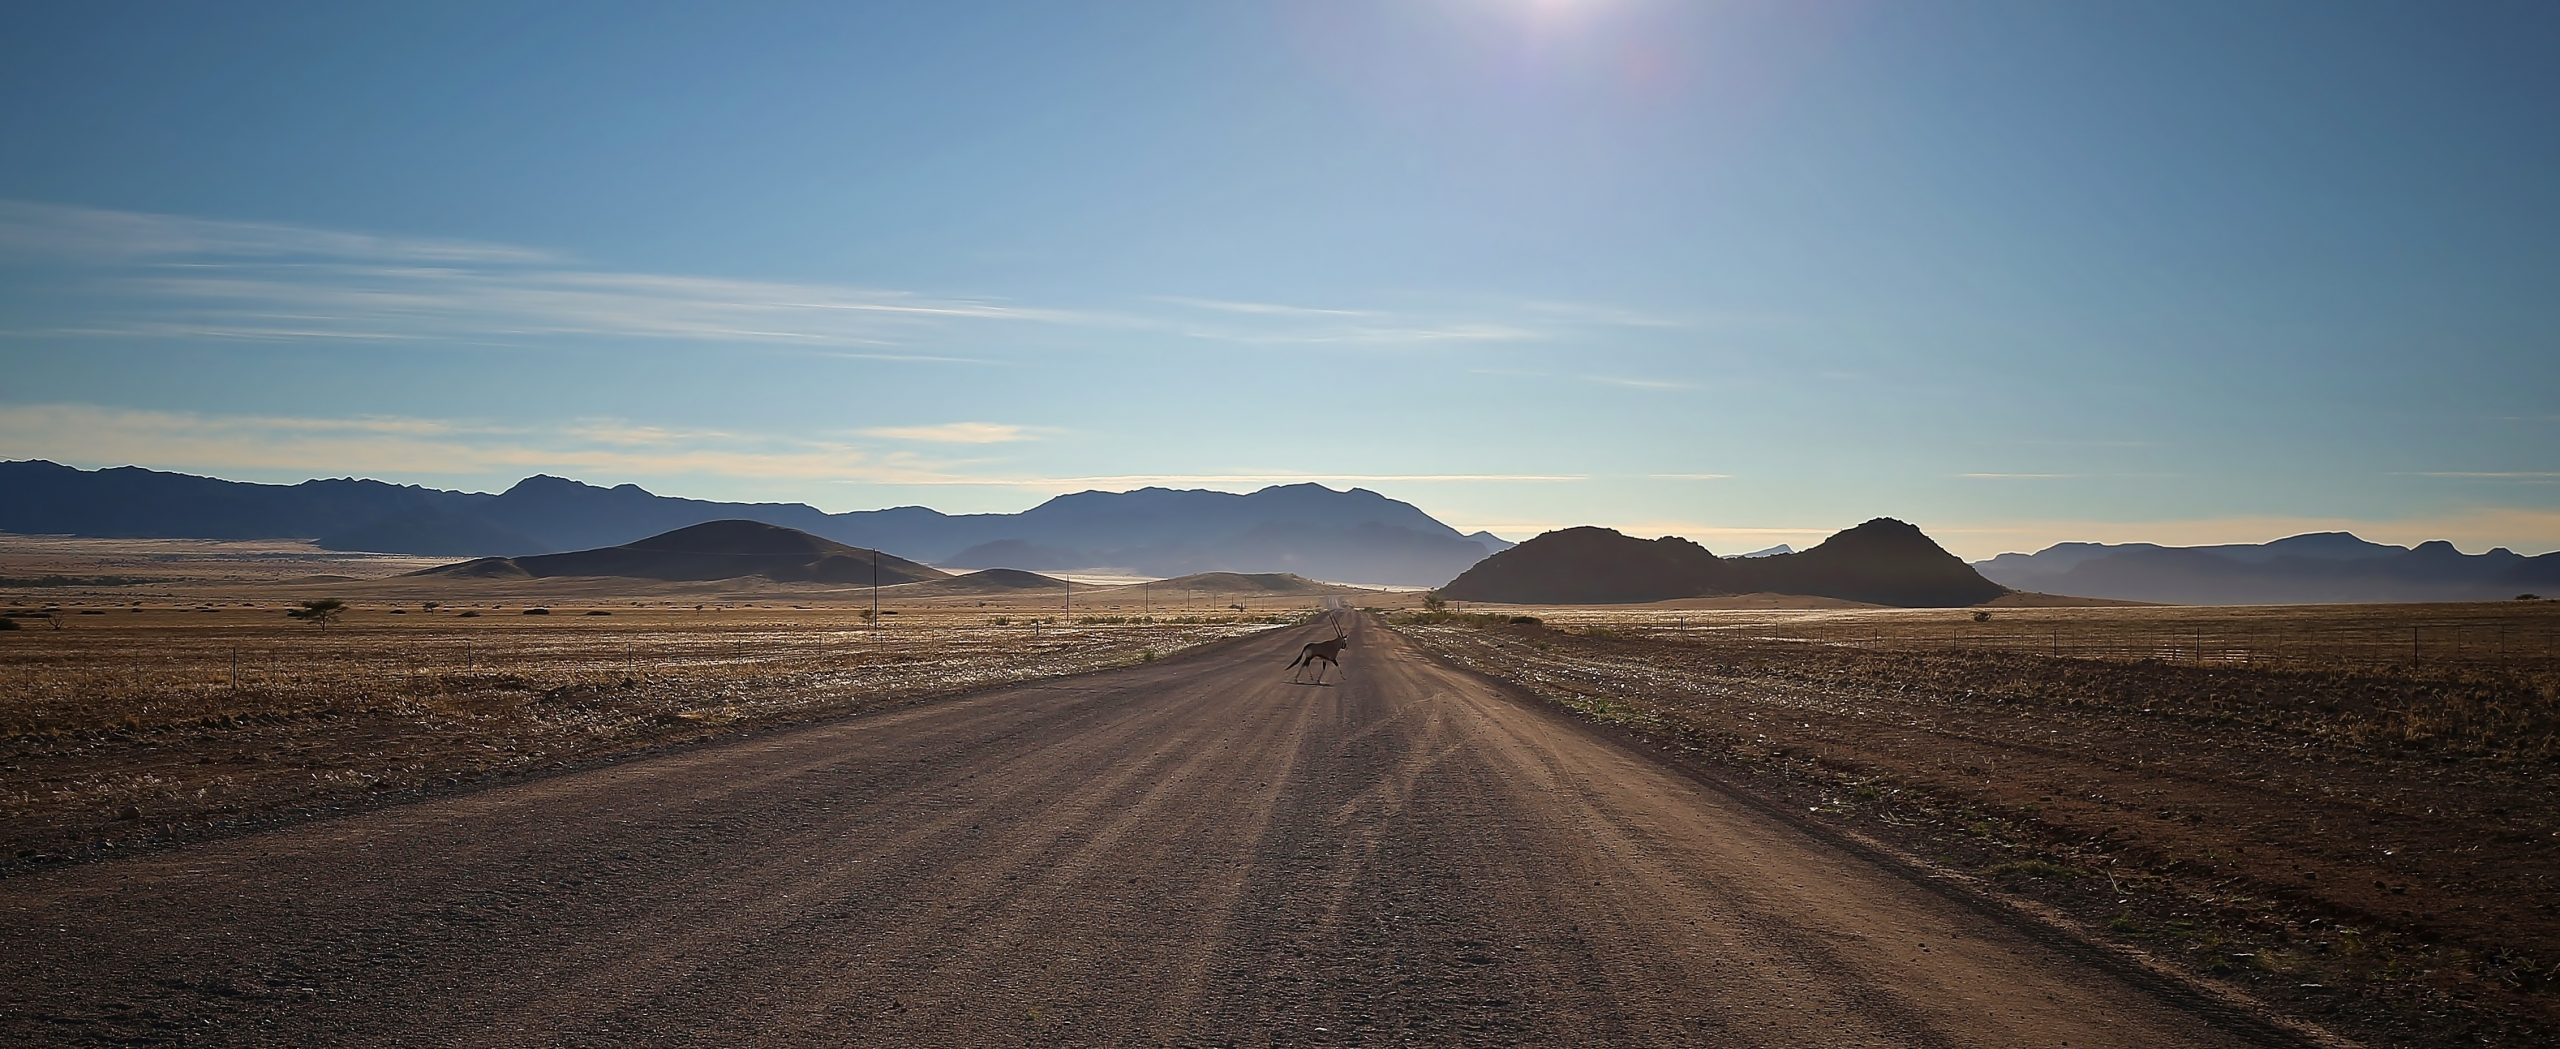 On the road again, Namibie